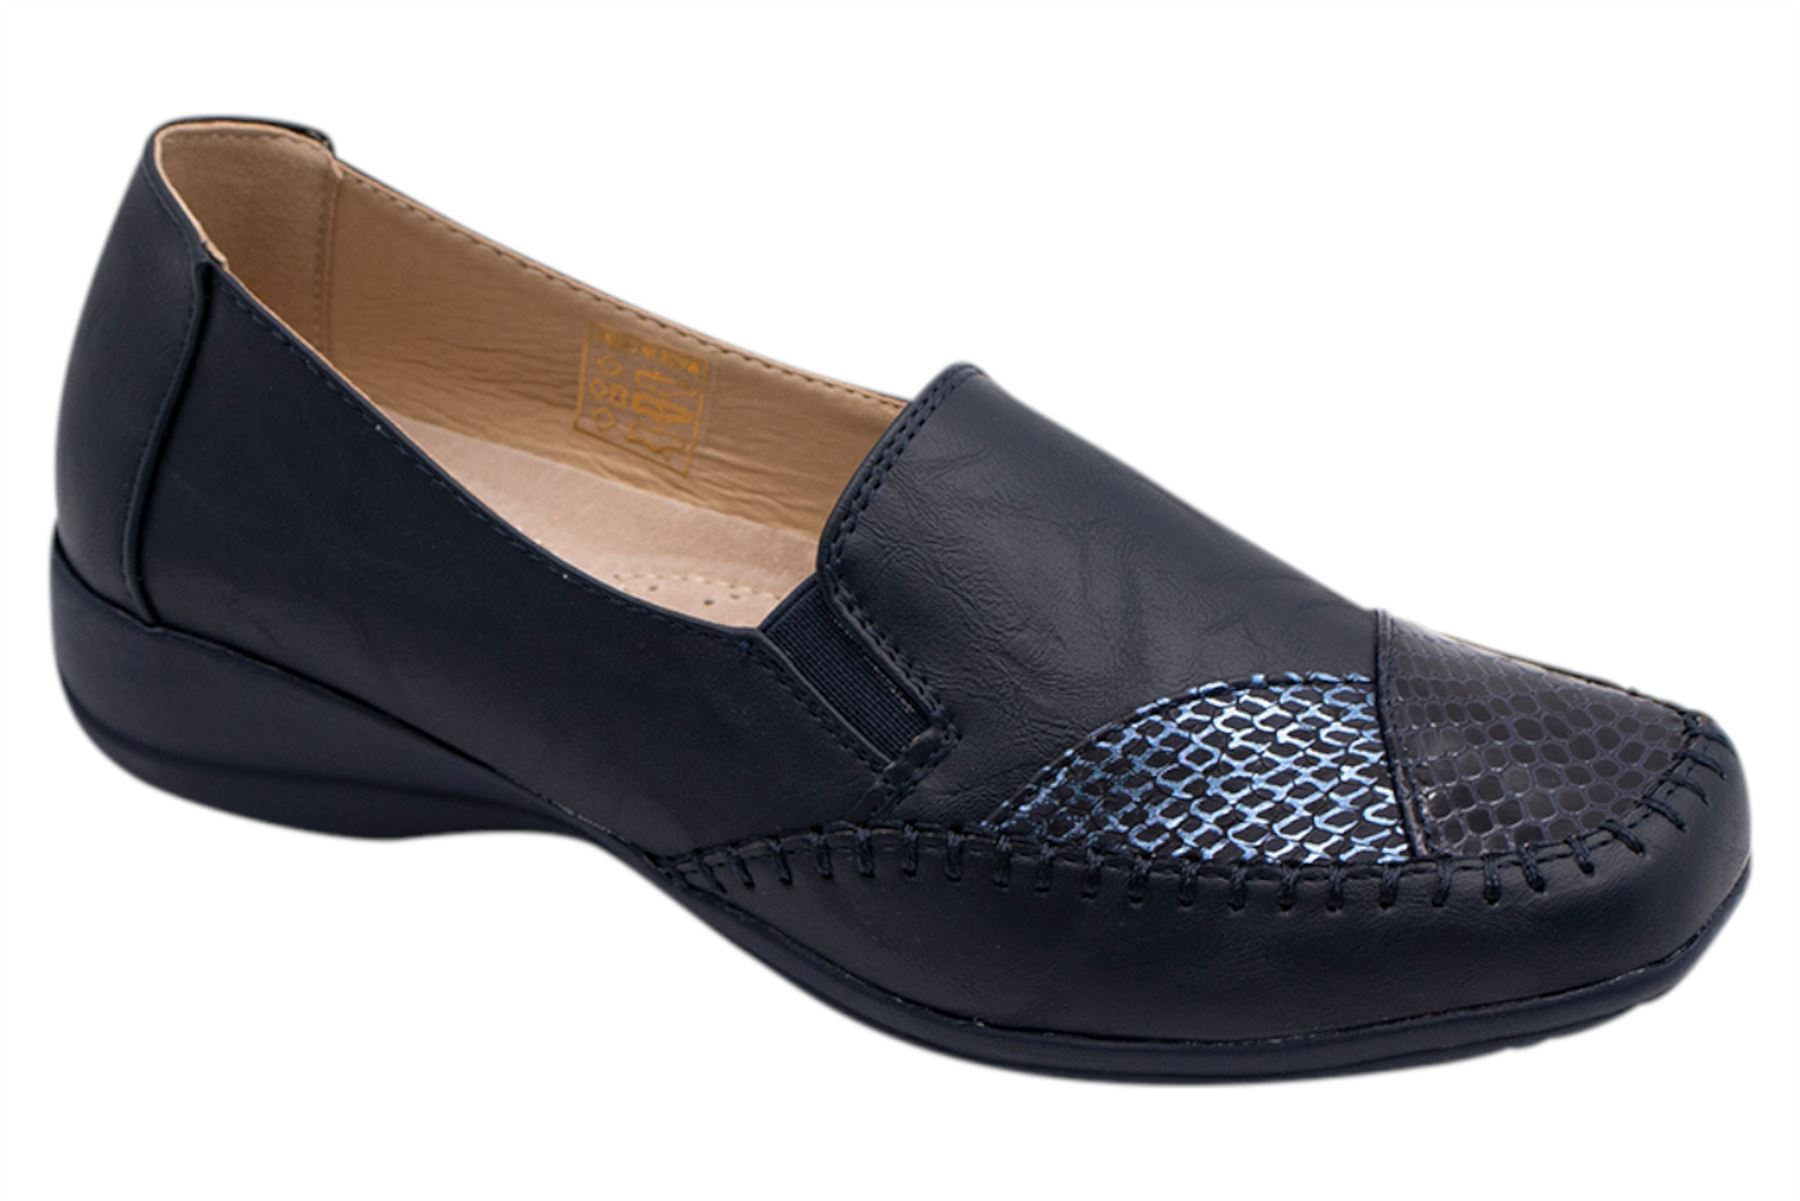 Womens-Flat-Shoes-Ladies-Pumps-Office-Work-Casual-Slip-On-Loafer-Size thumbnail 21